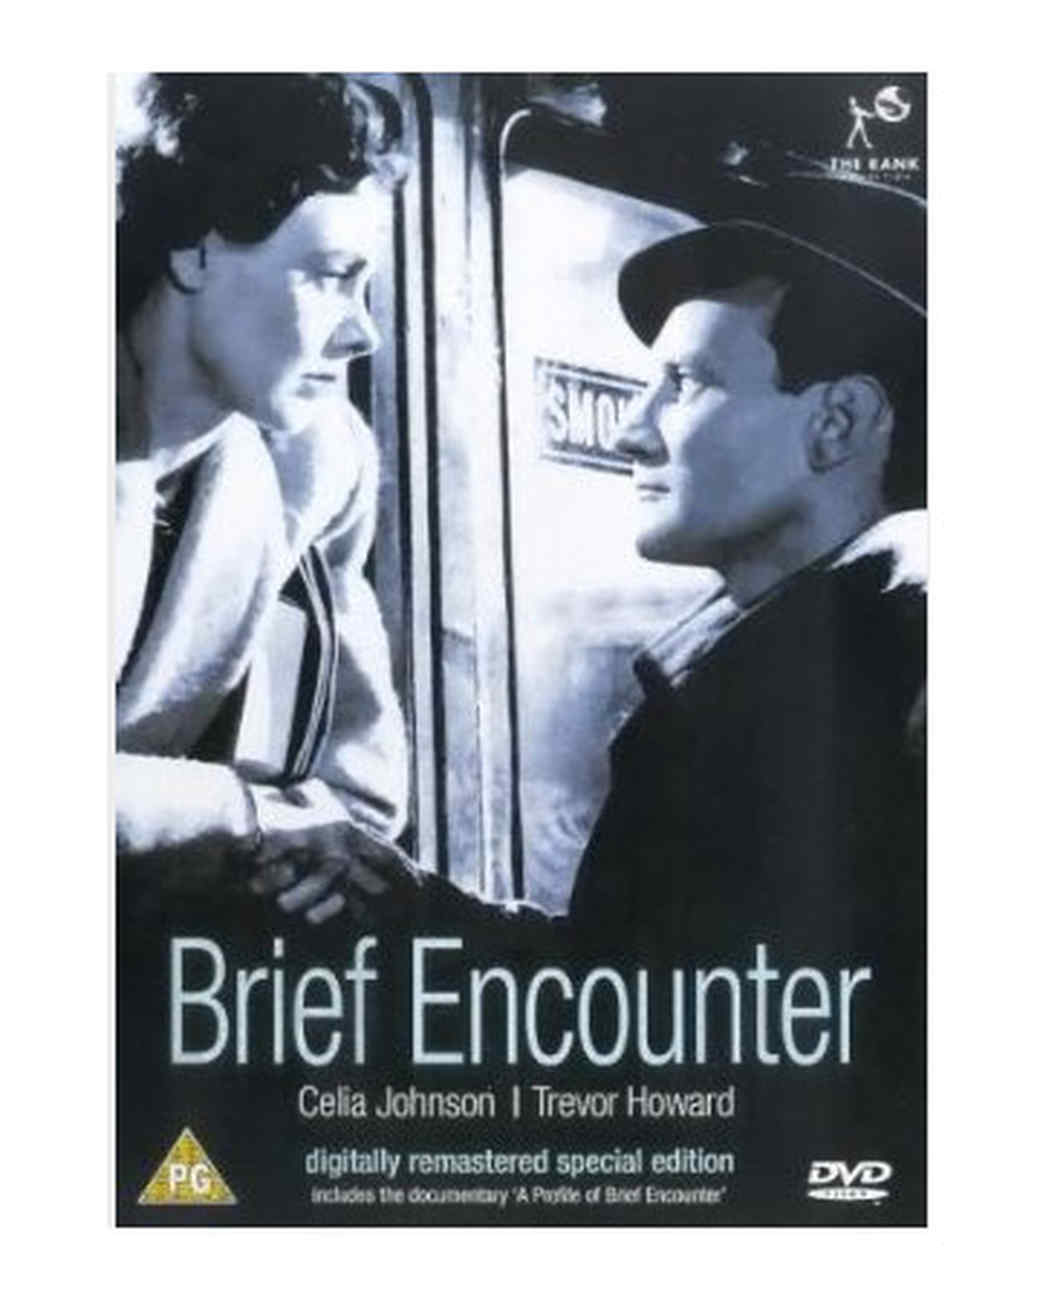 stock_movie_stills_brief_encounter_2.jpg